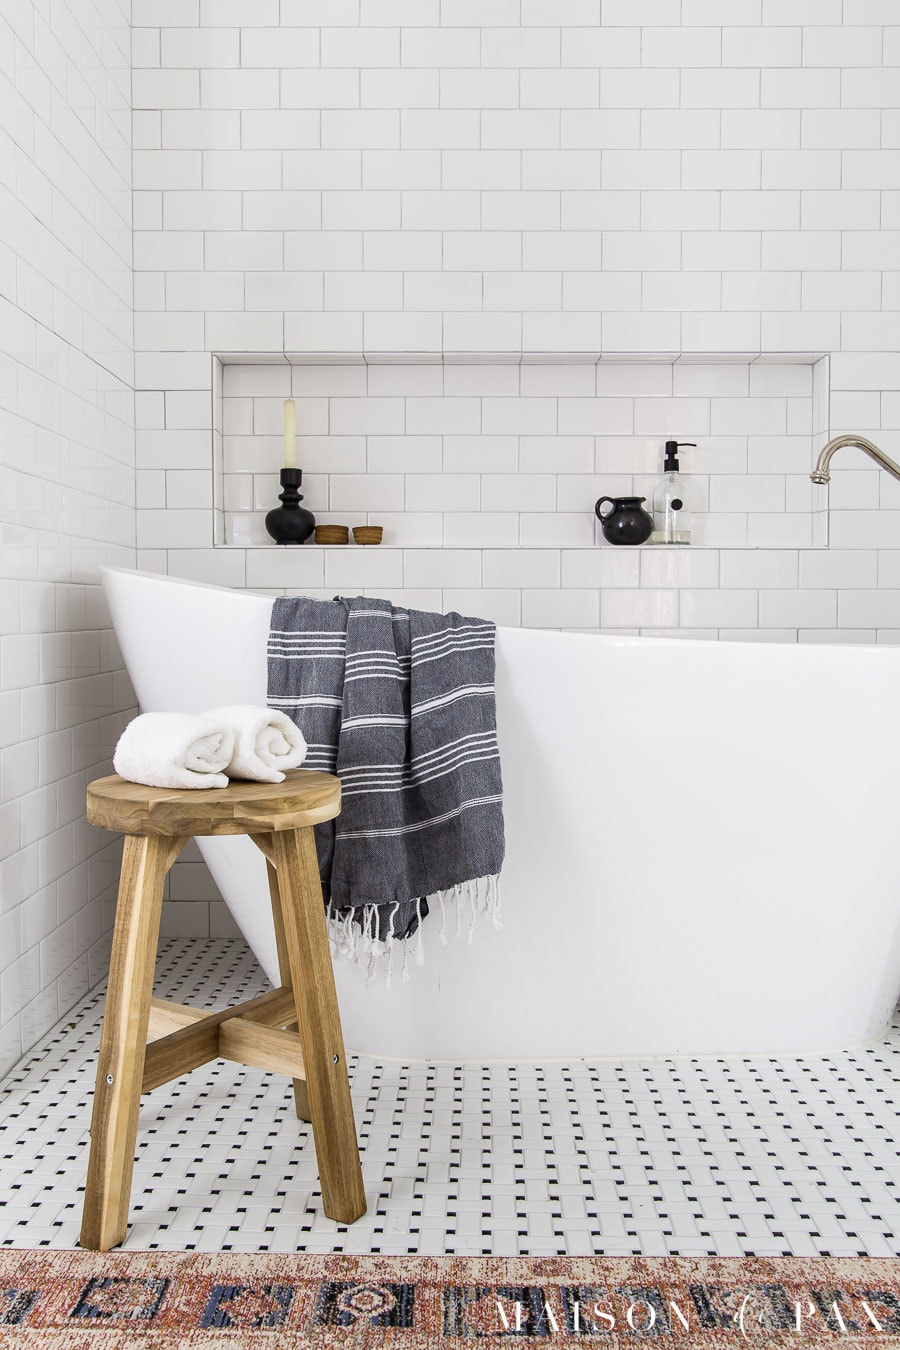 freestanding slipper tub with wood stool and turkish towel